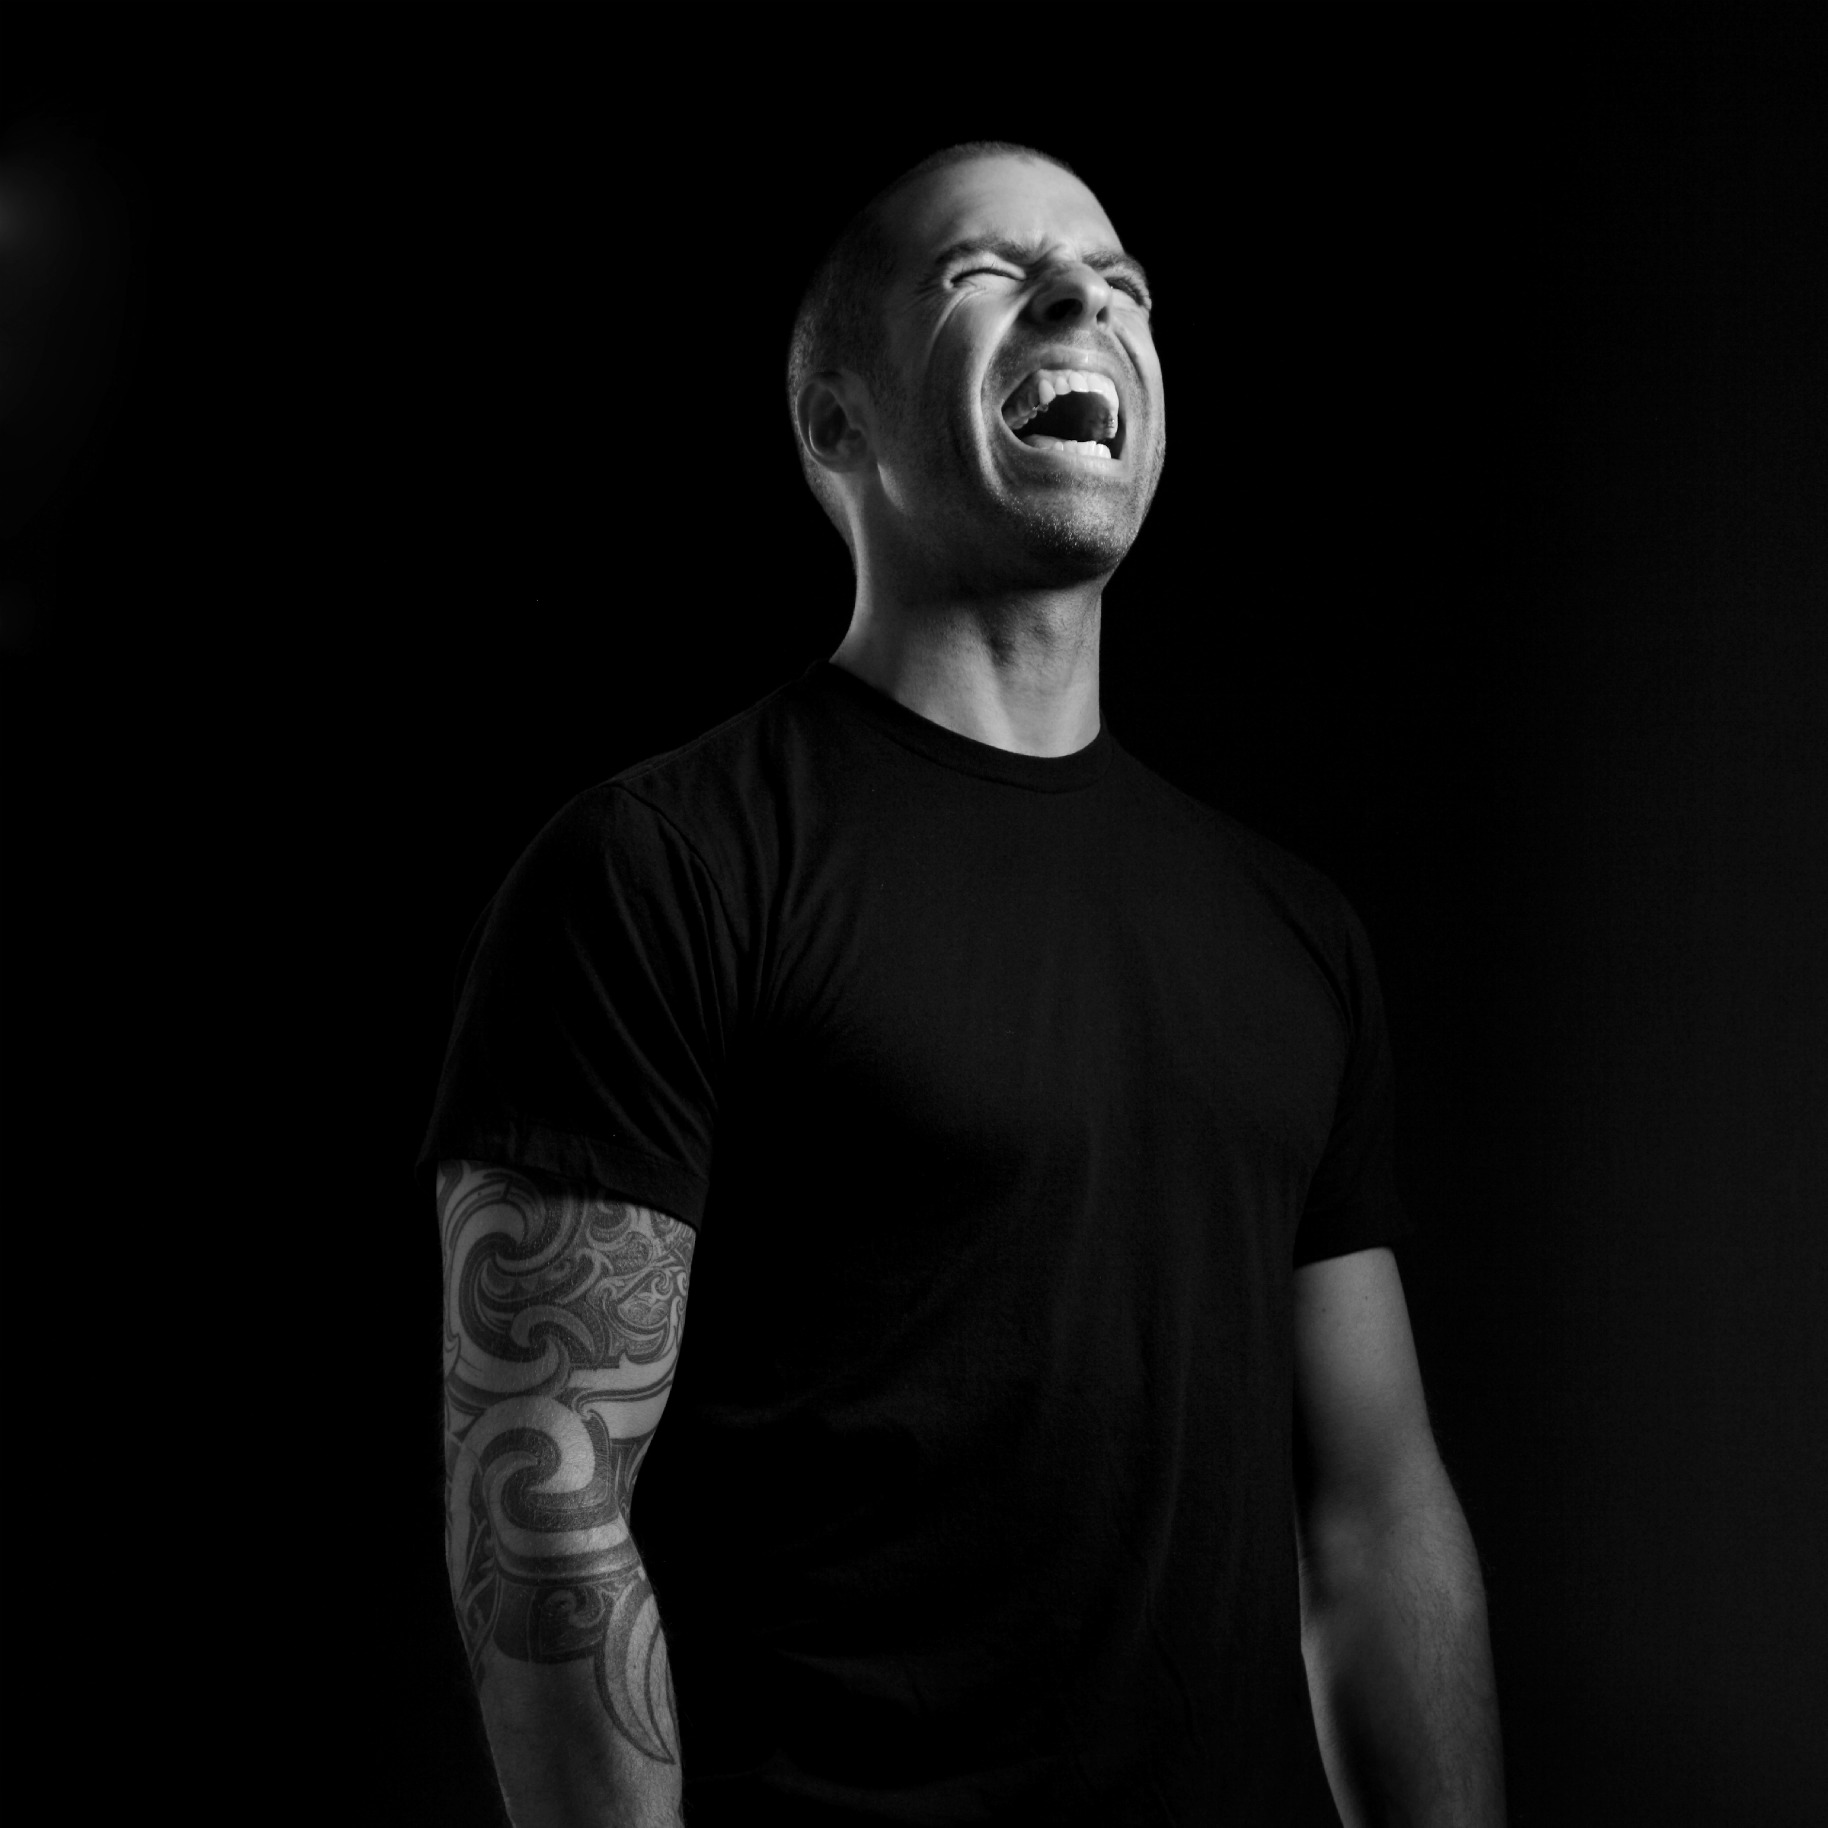 Image of Chris Liebing